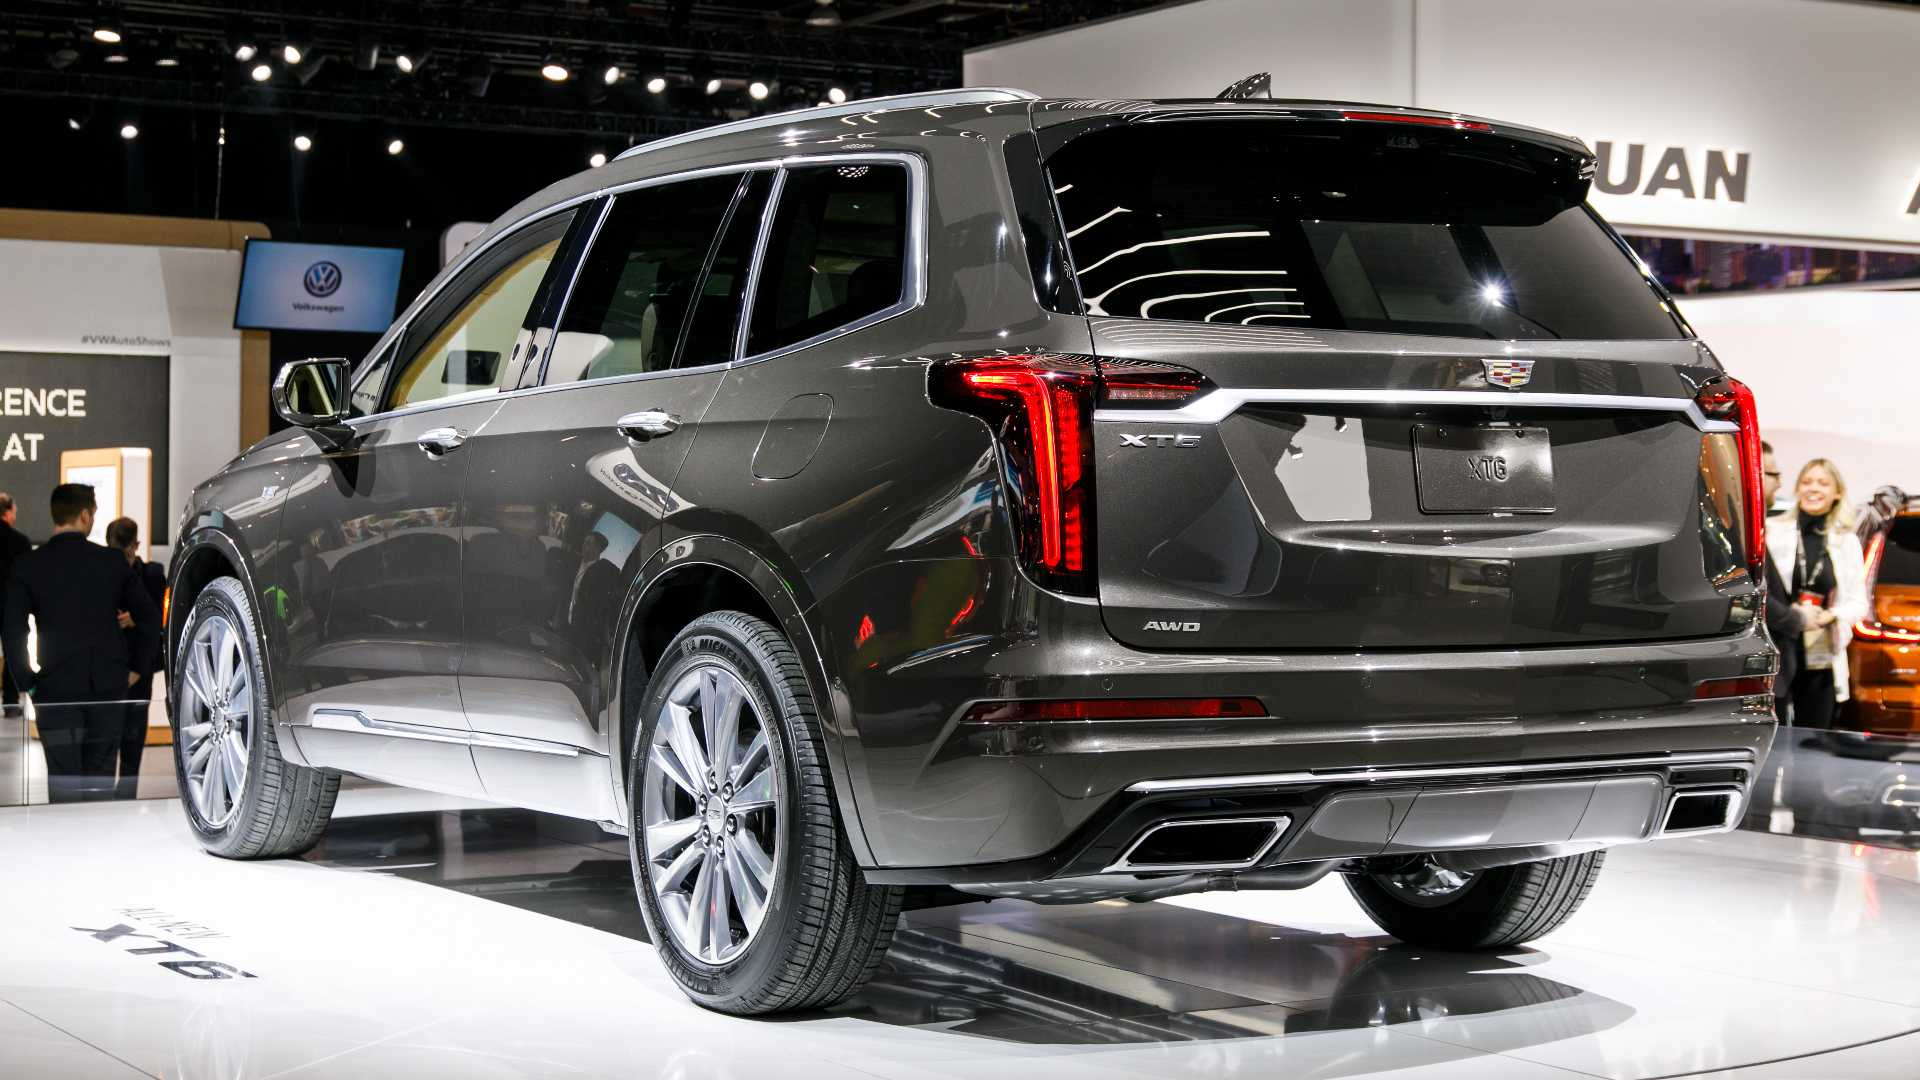 82 Best 2020 Cadillac Xt6 Price Pictures